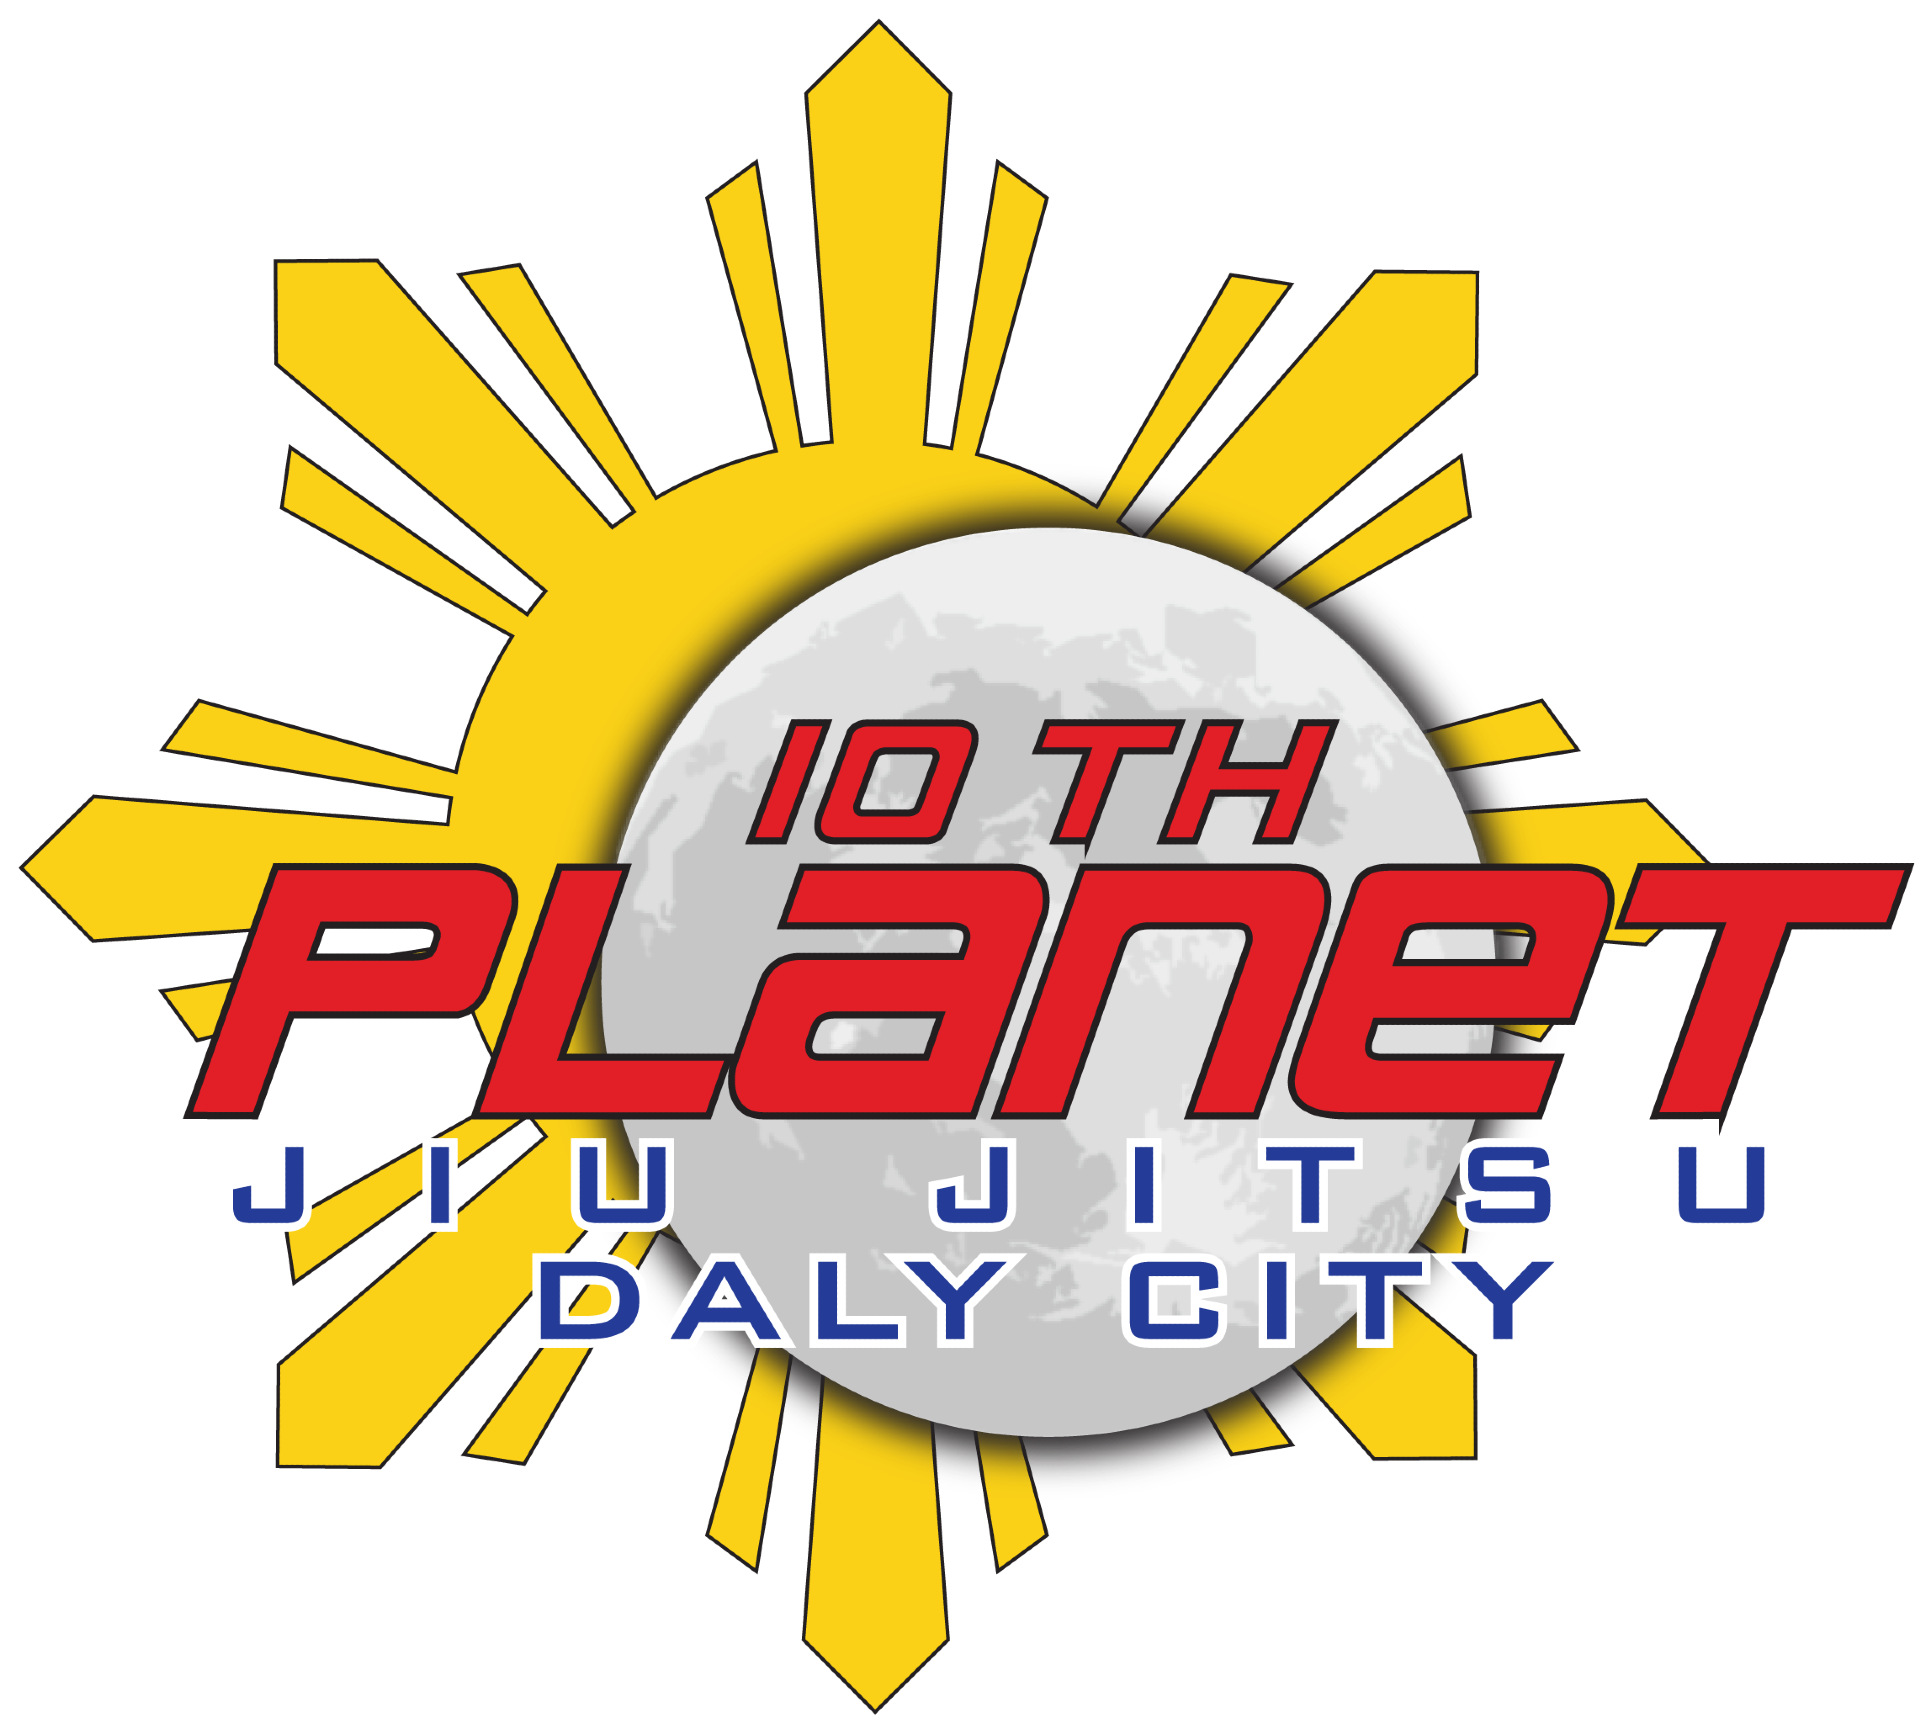 10th Planet Daly City